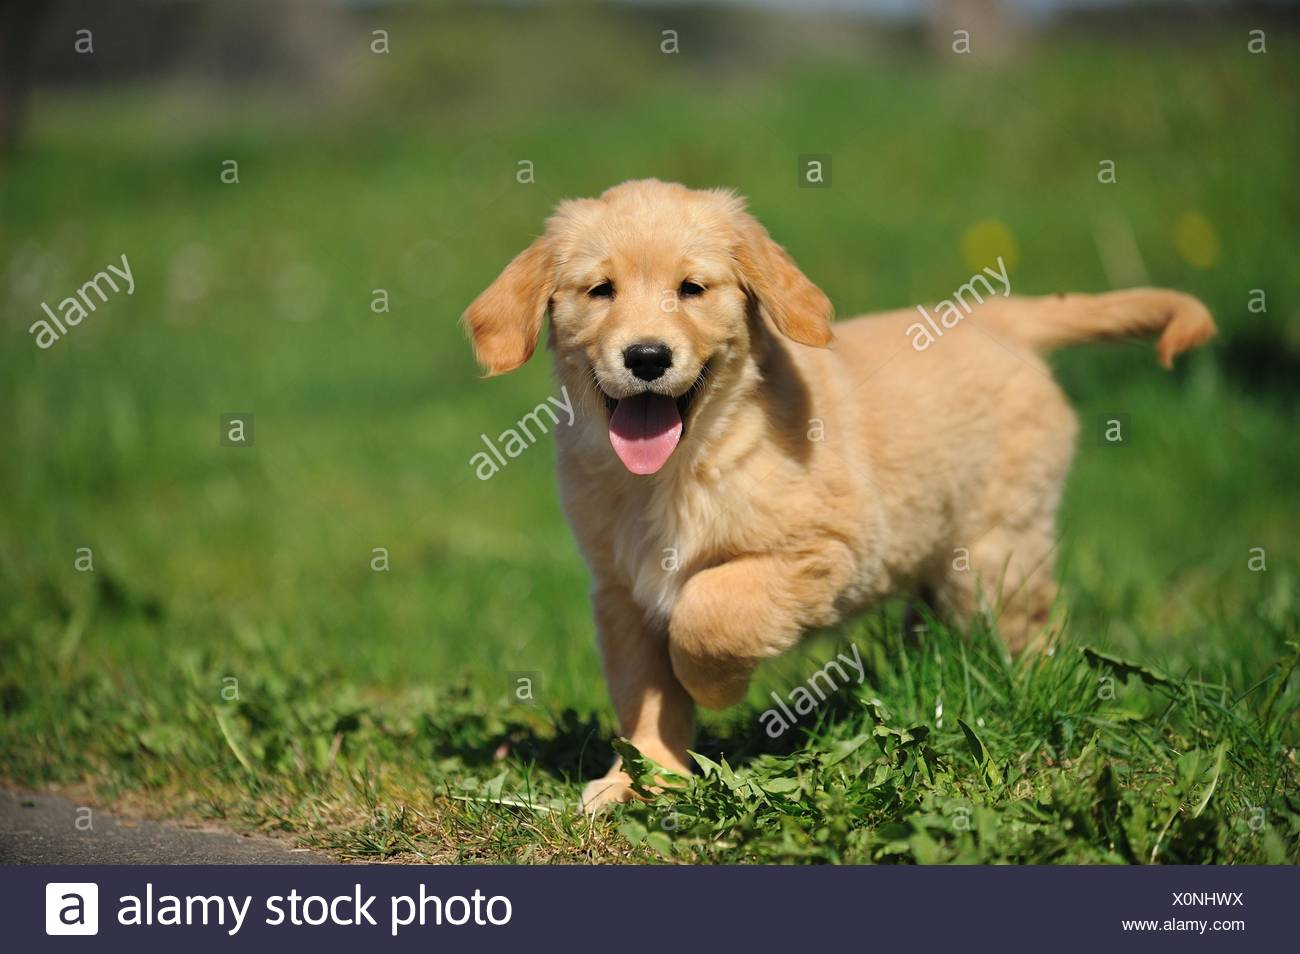 Golden Retriever Puppy Stock Photo 275840934 Alamy